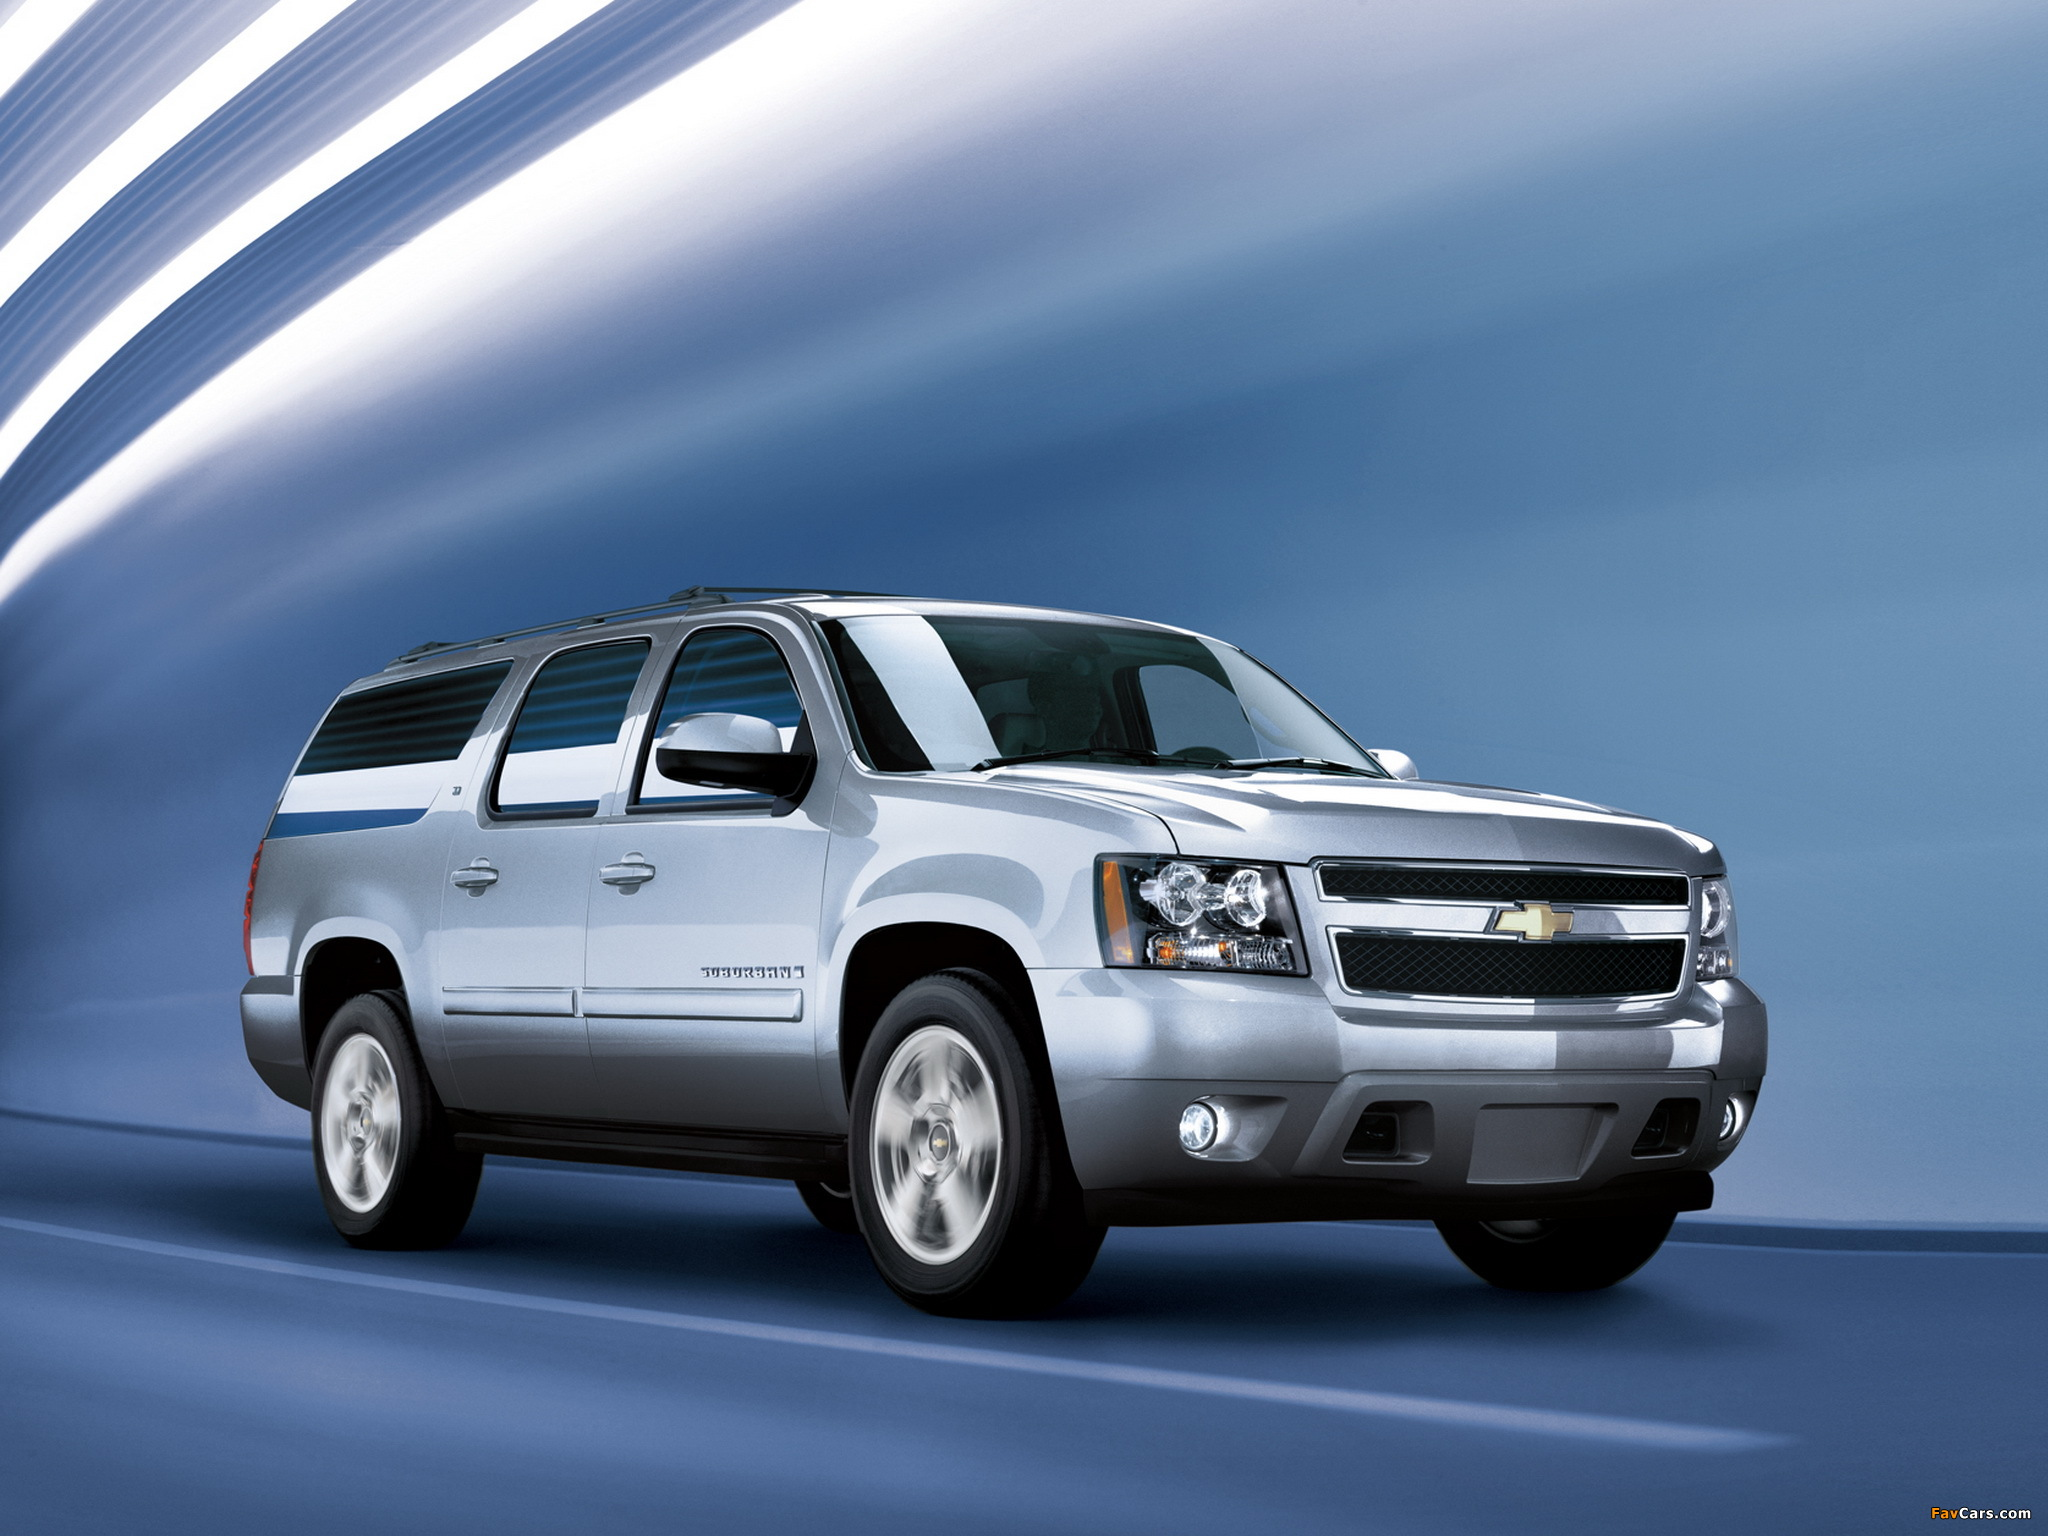 Wallpapers of Chevrolet Suburban (GMT900) 2006 (2048x1536)